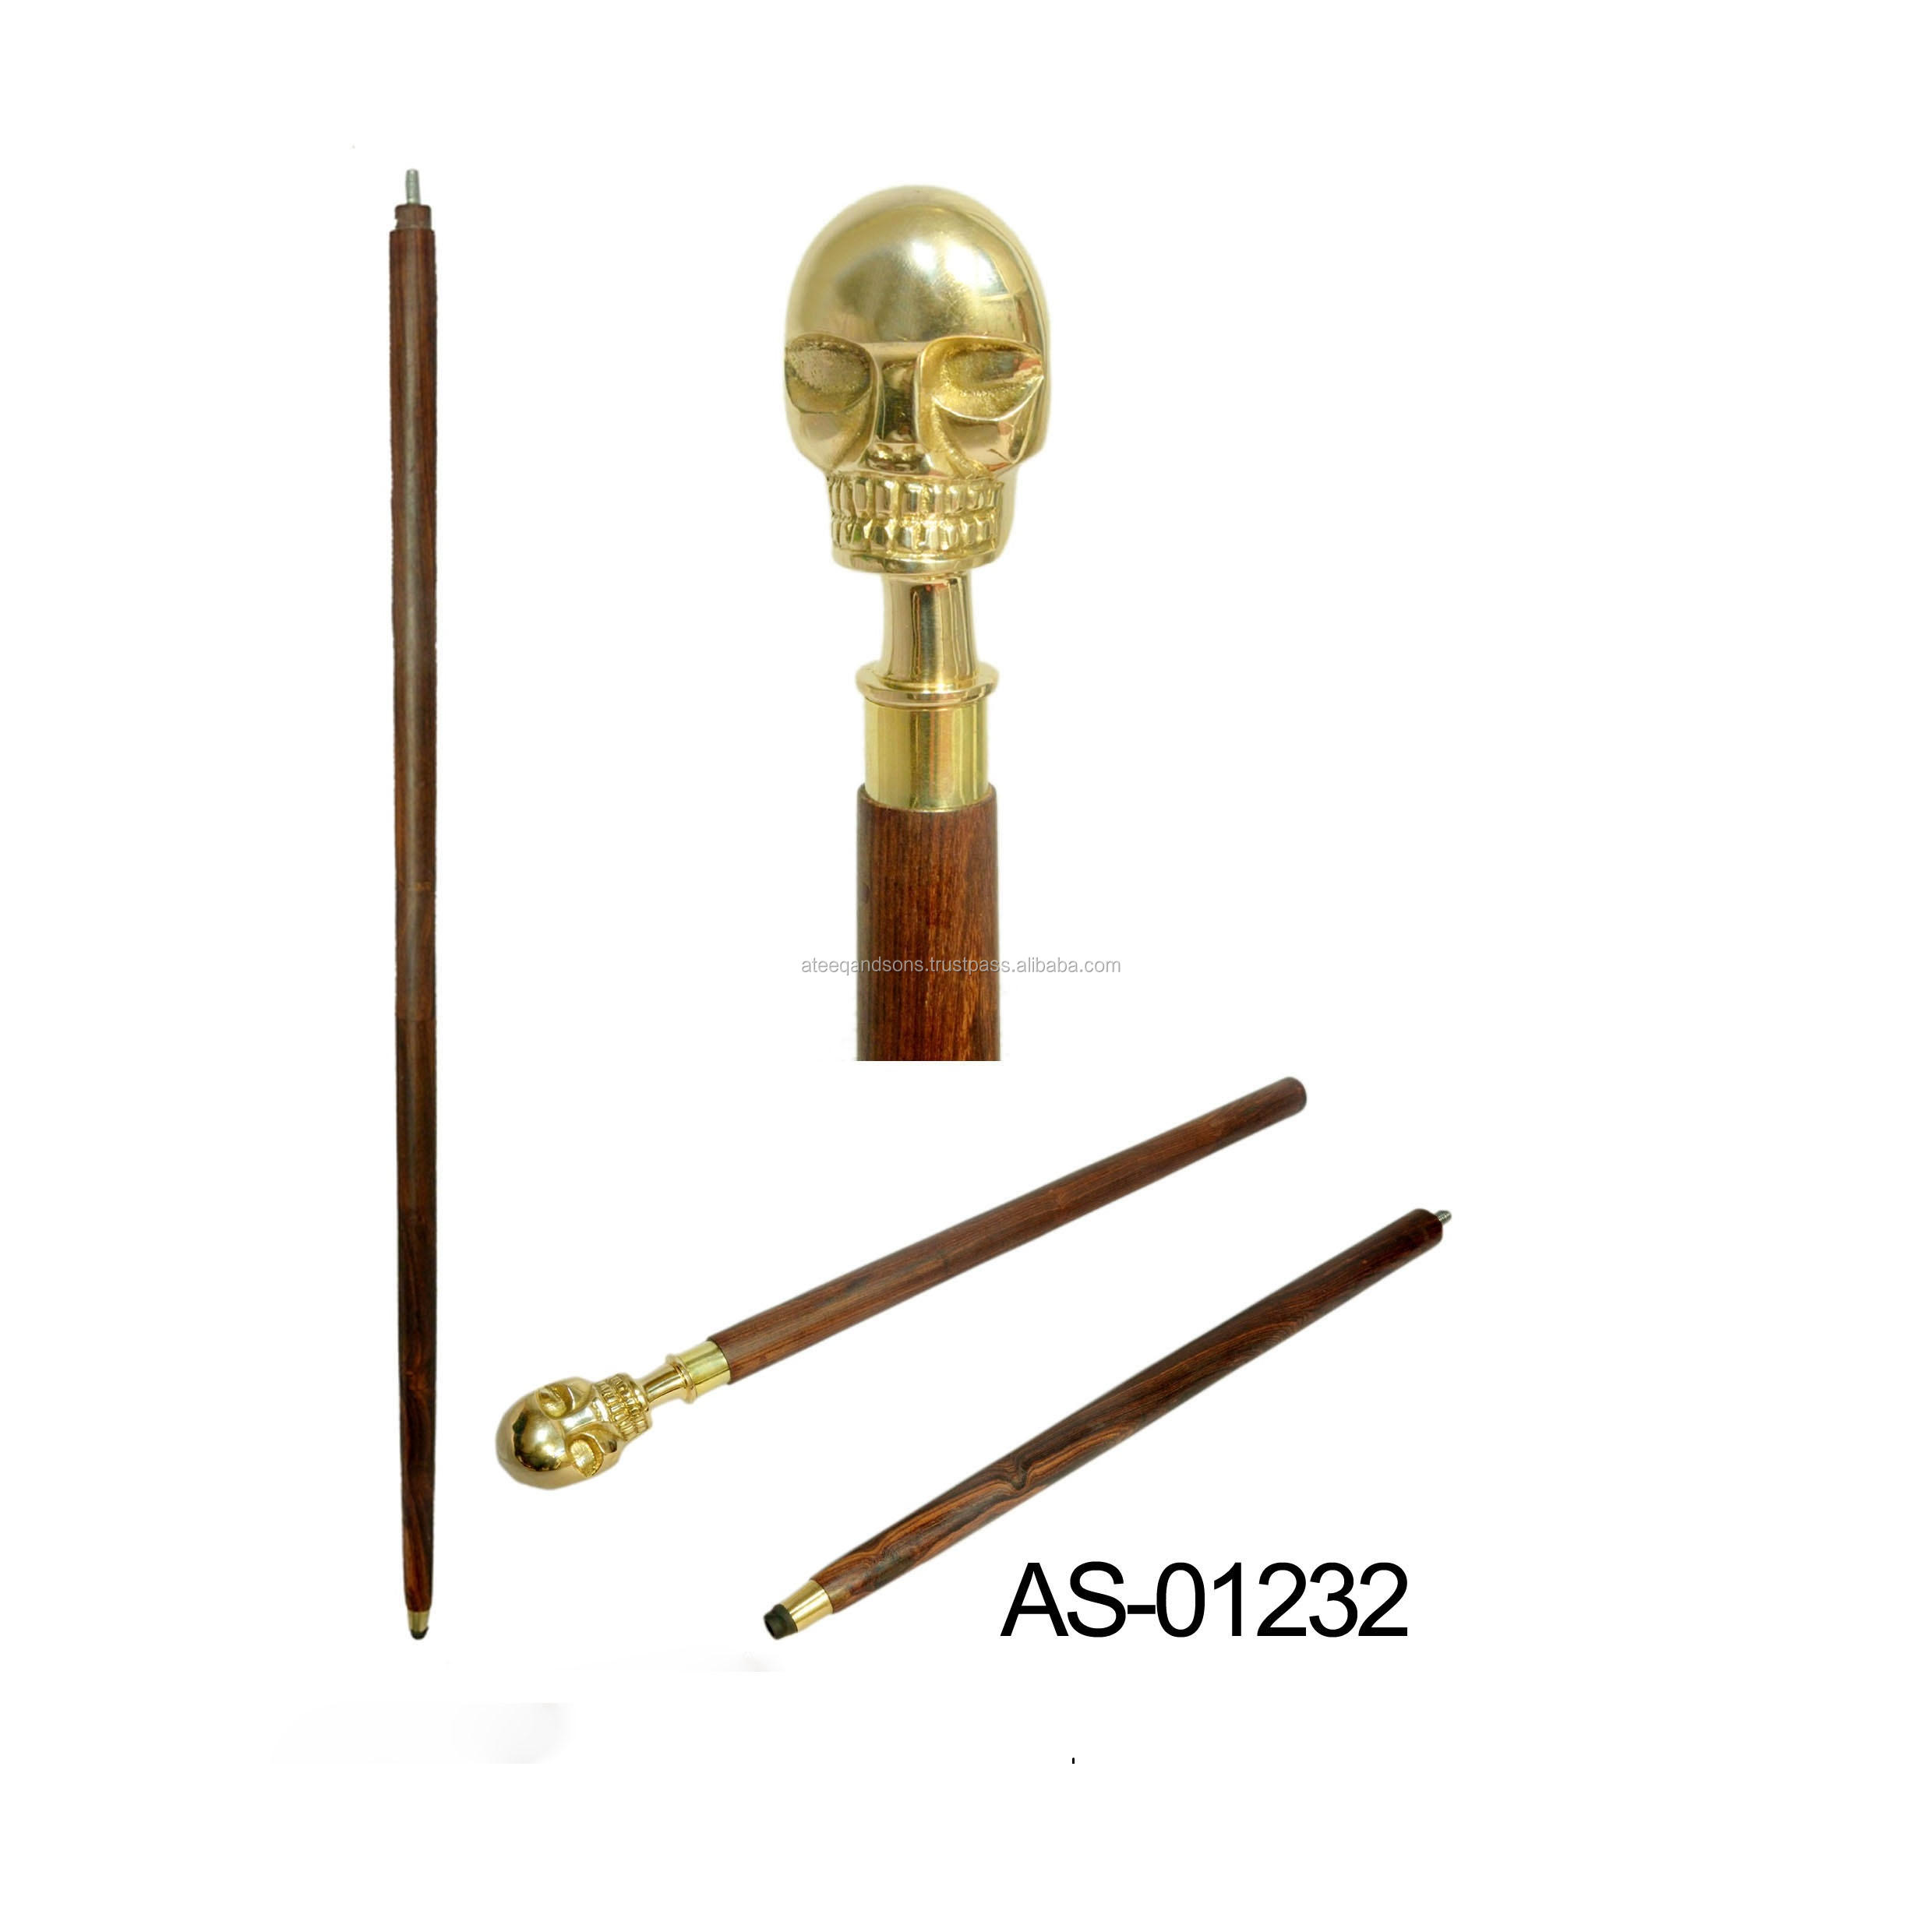 Scalp And Skulld l Handle Brass And Wood Walking Stick